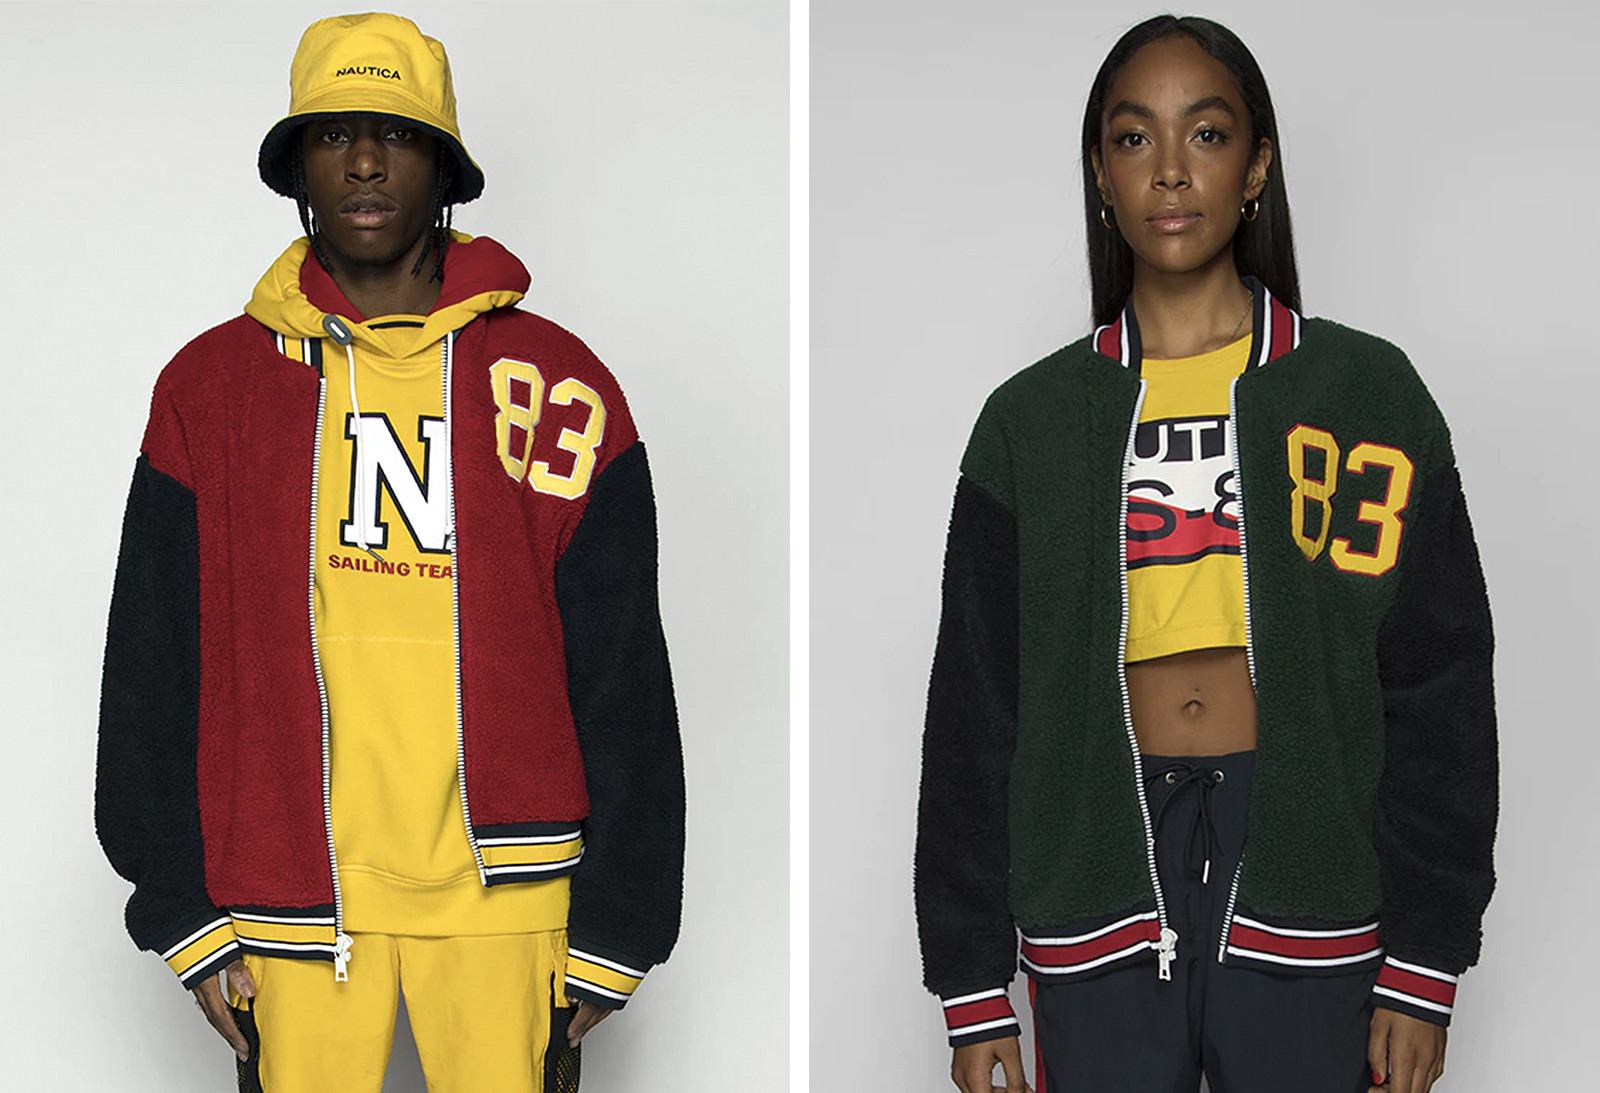 Varsity Jackets Fall 2017 Outerwear Trends